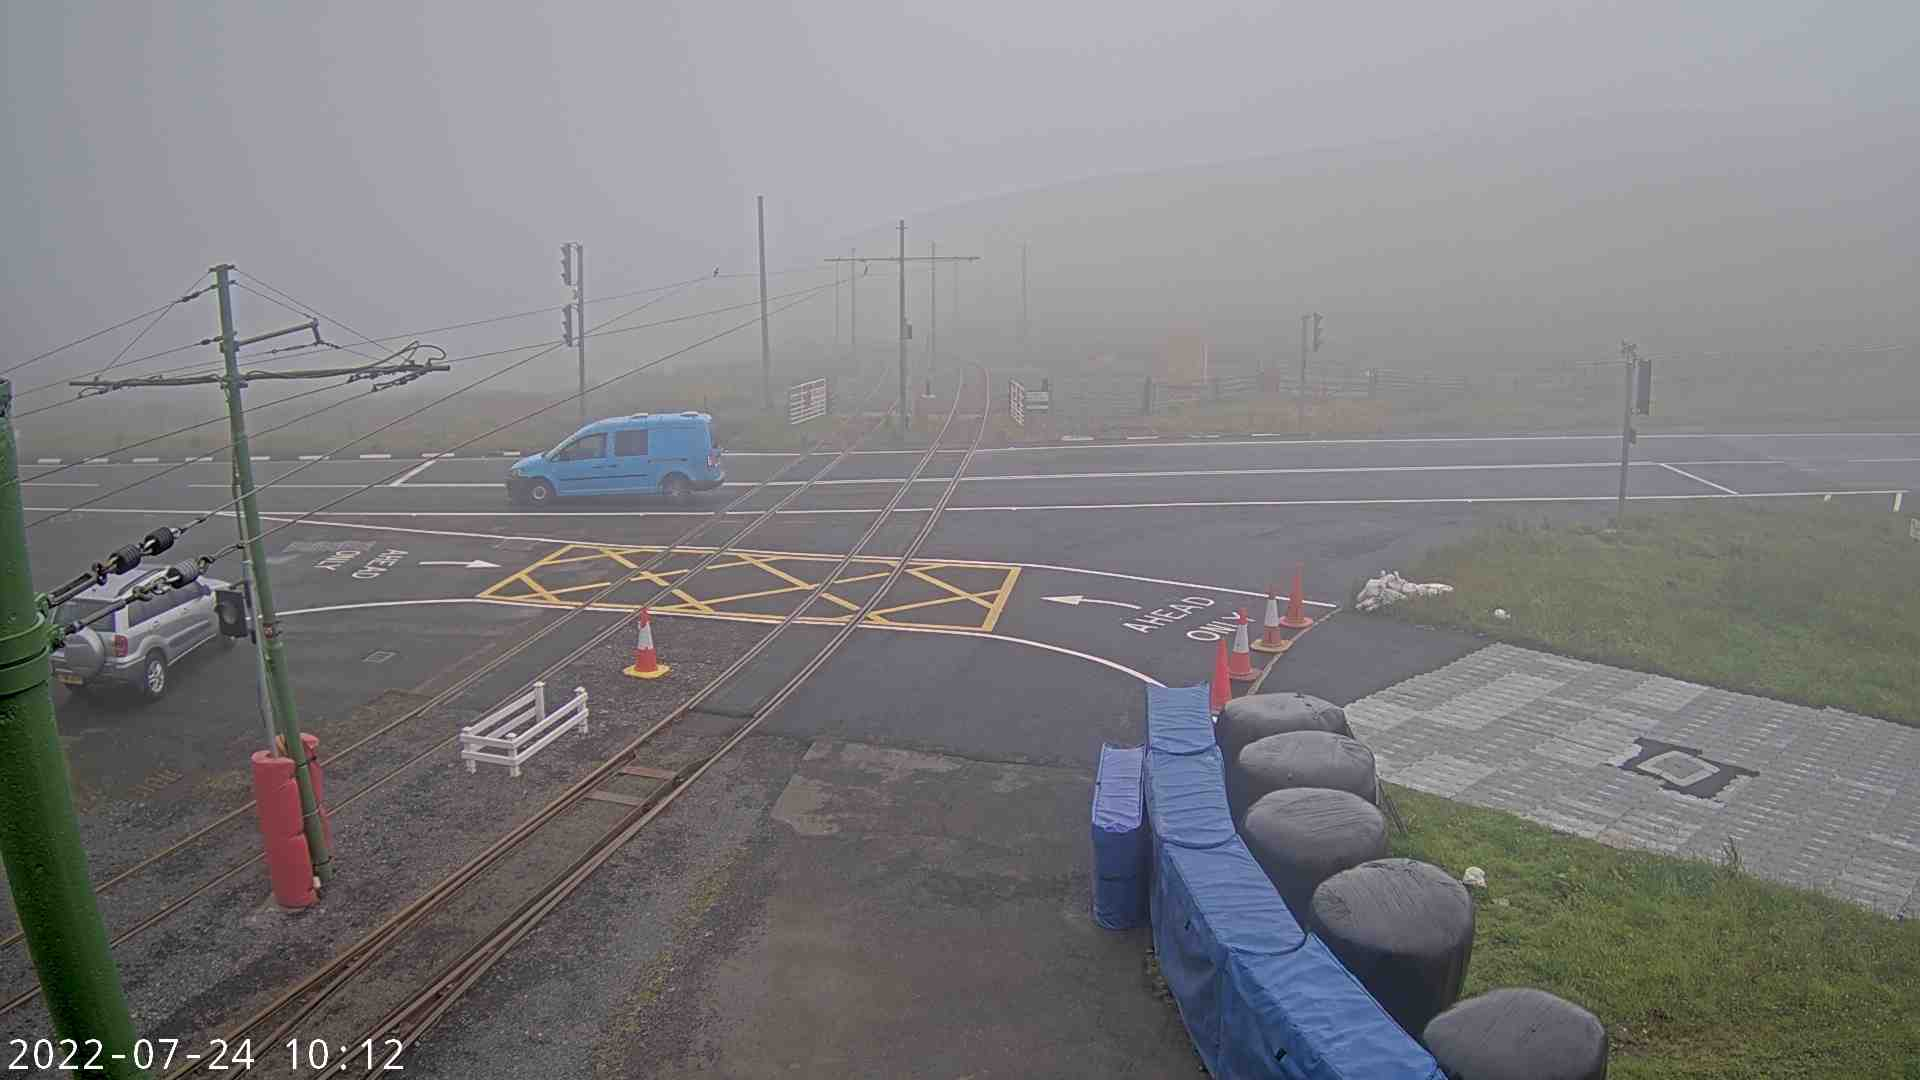 Bungalow (Laxey Valley) Webcam